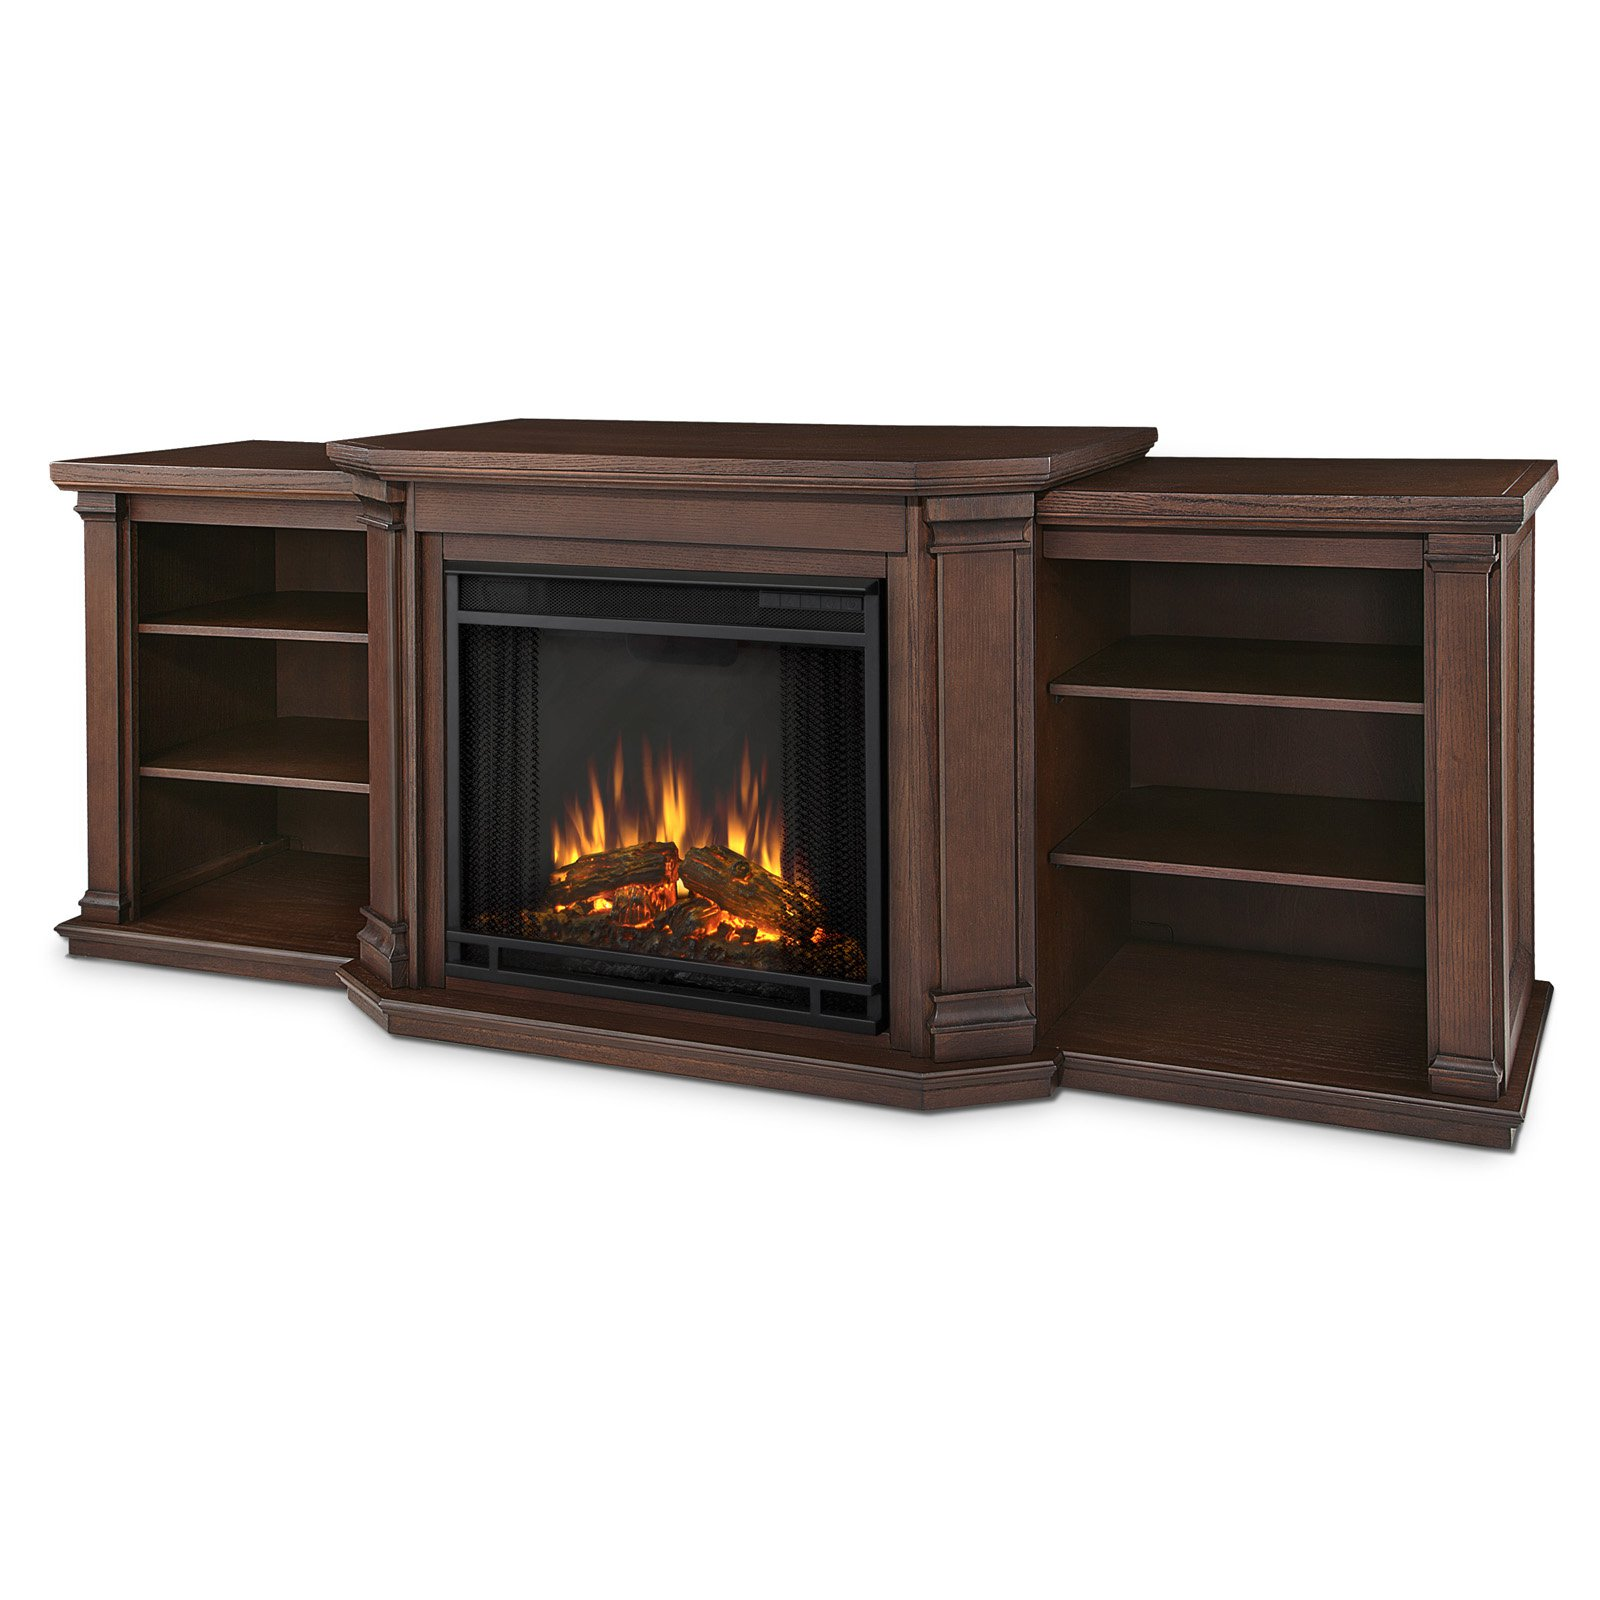 Real Flame Valmont Entertainment Center Electric Fireplace by Real Flame